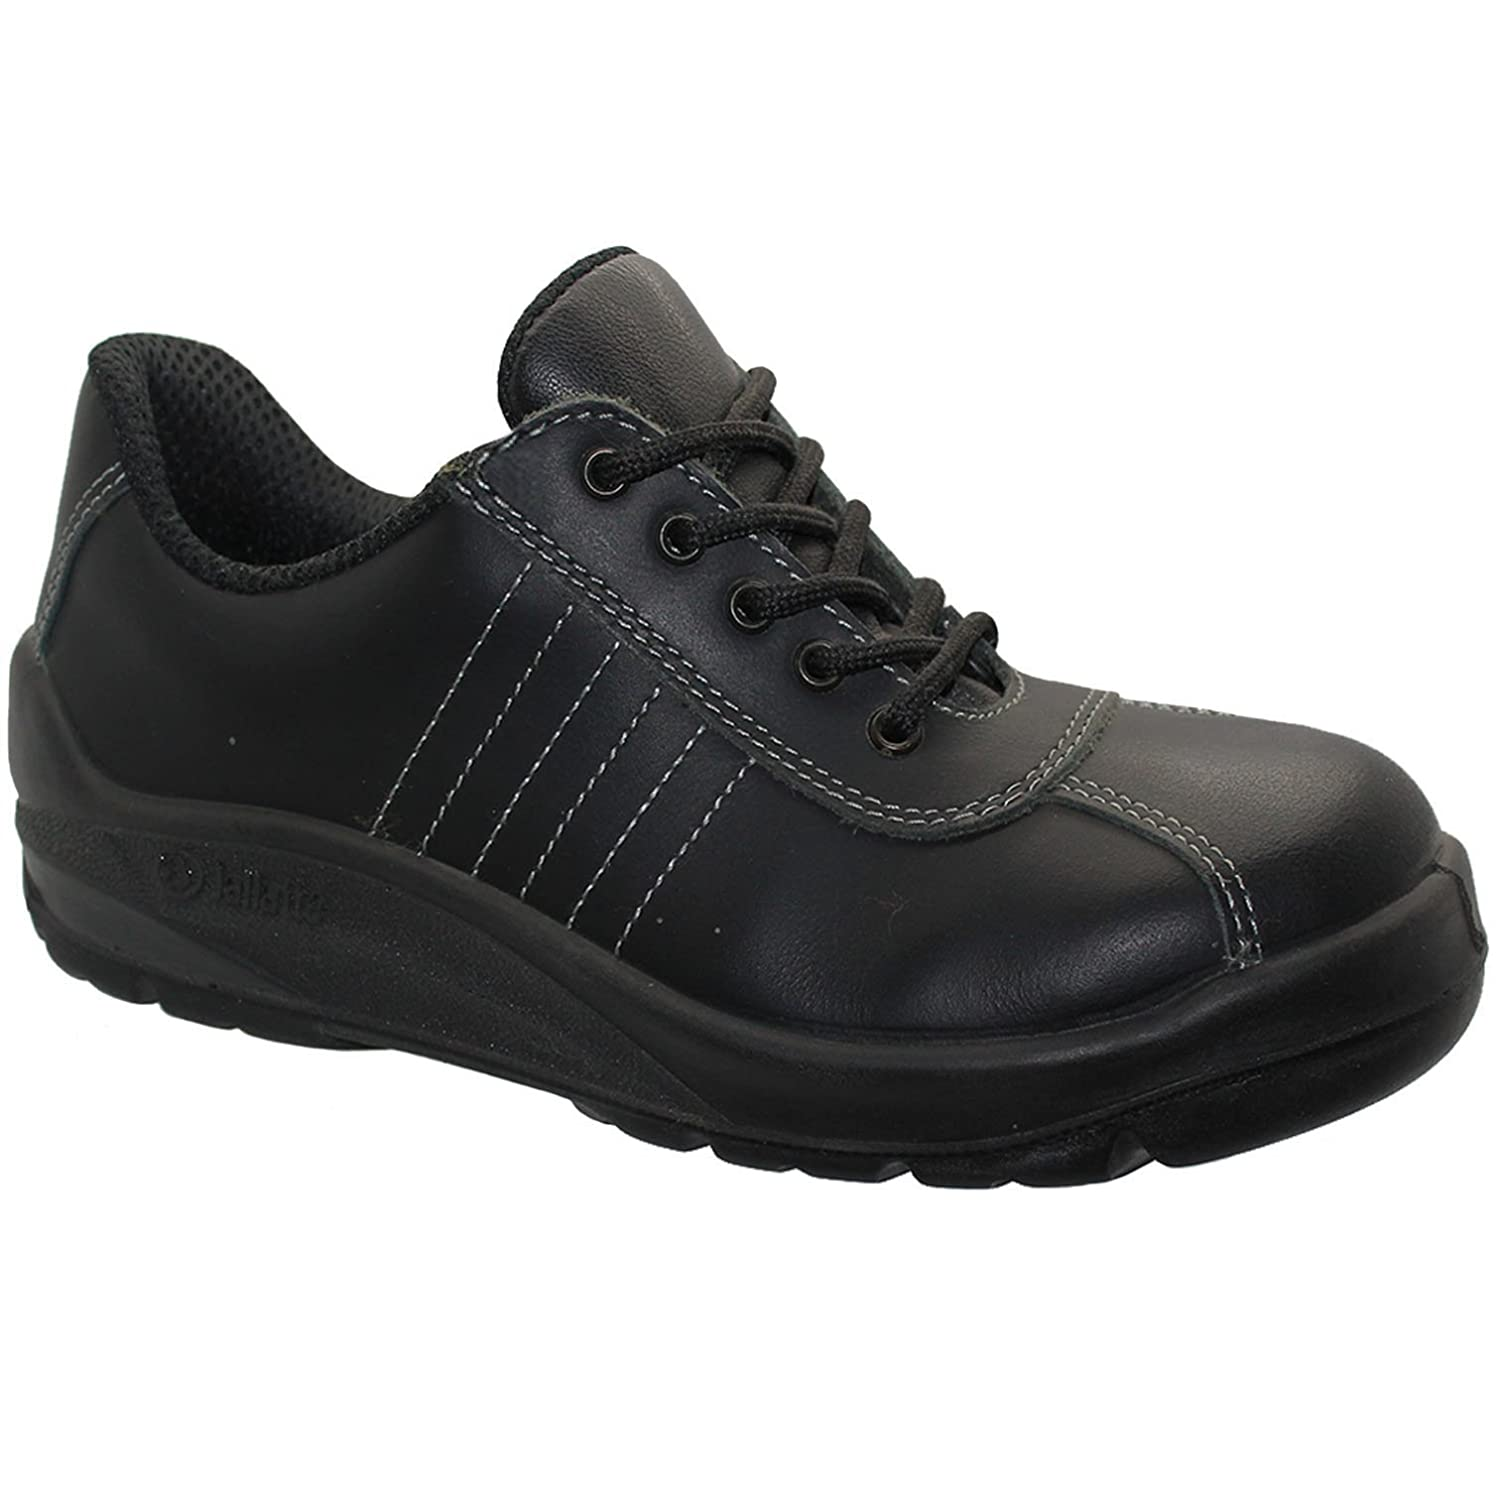 WOMENS LADIES black   LEATHER WORK SAFETY STEEL TOE CAP BOOTS SHOES TRAINERS